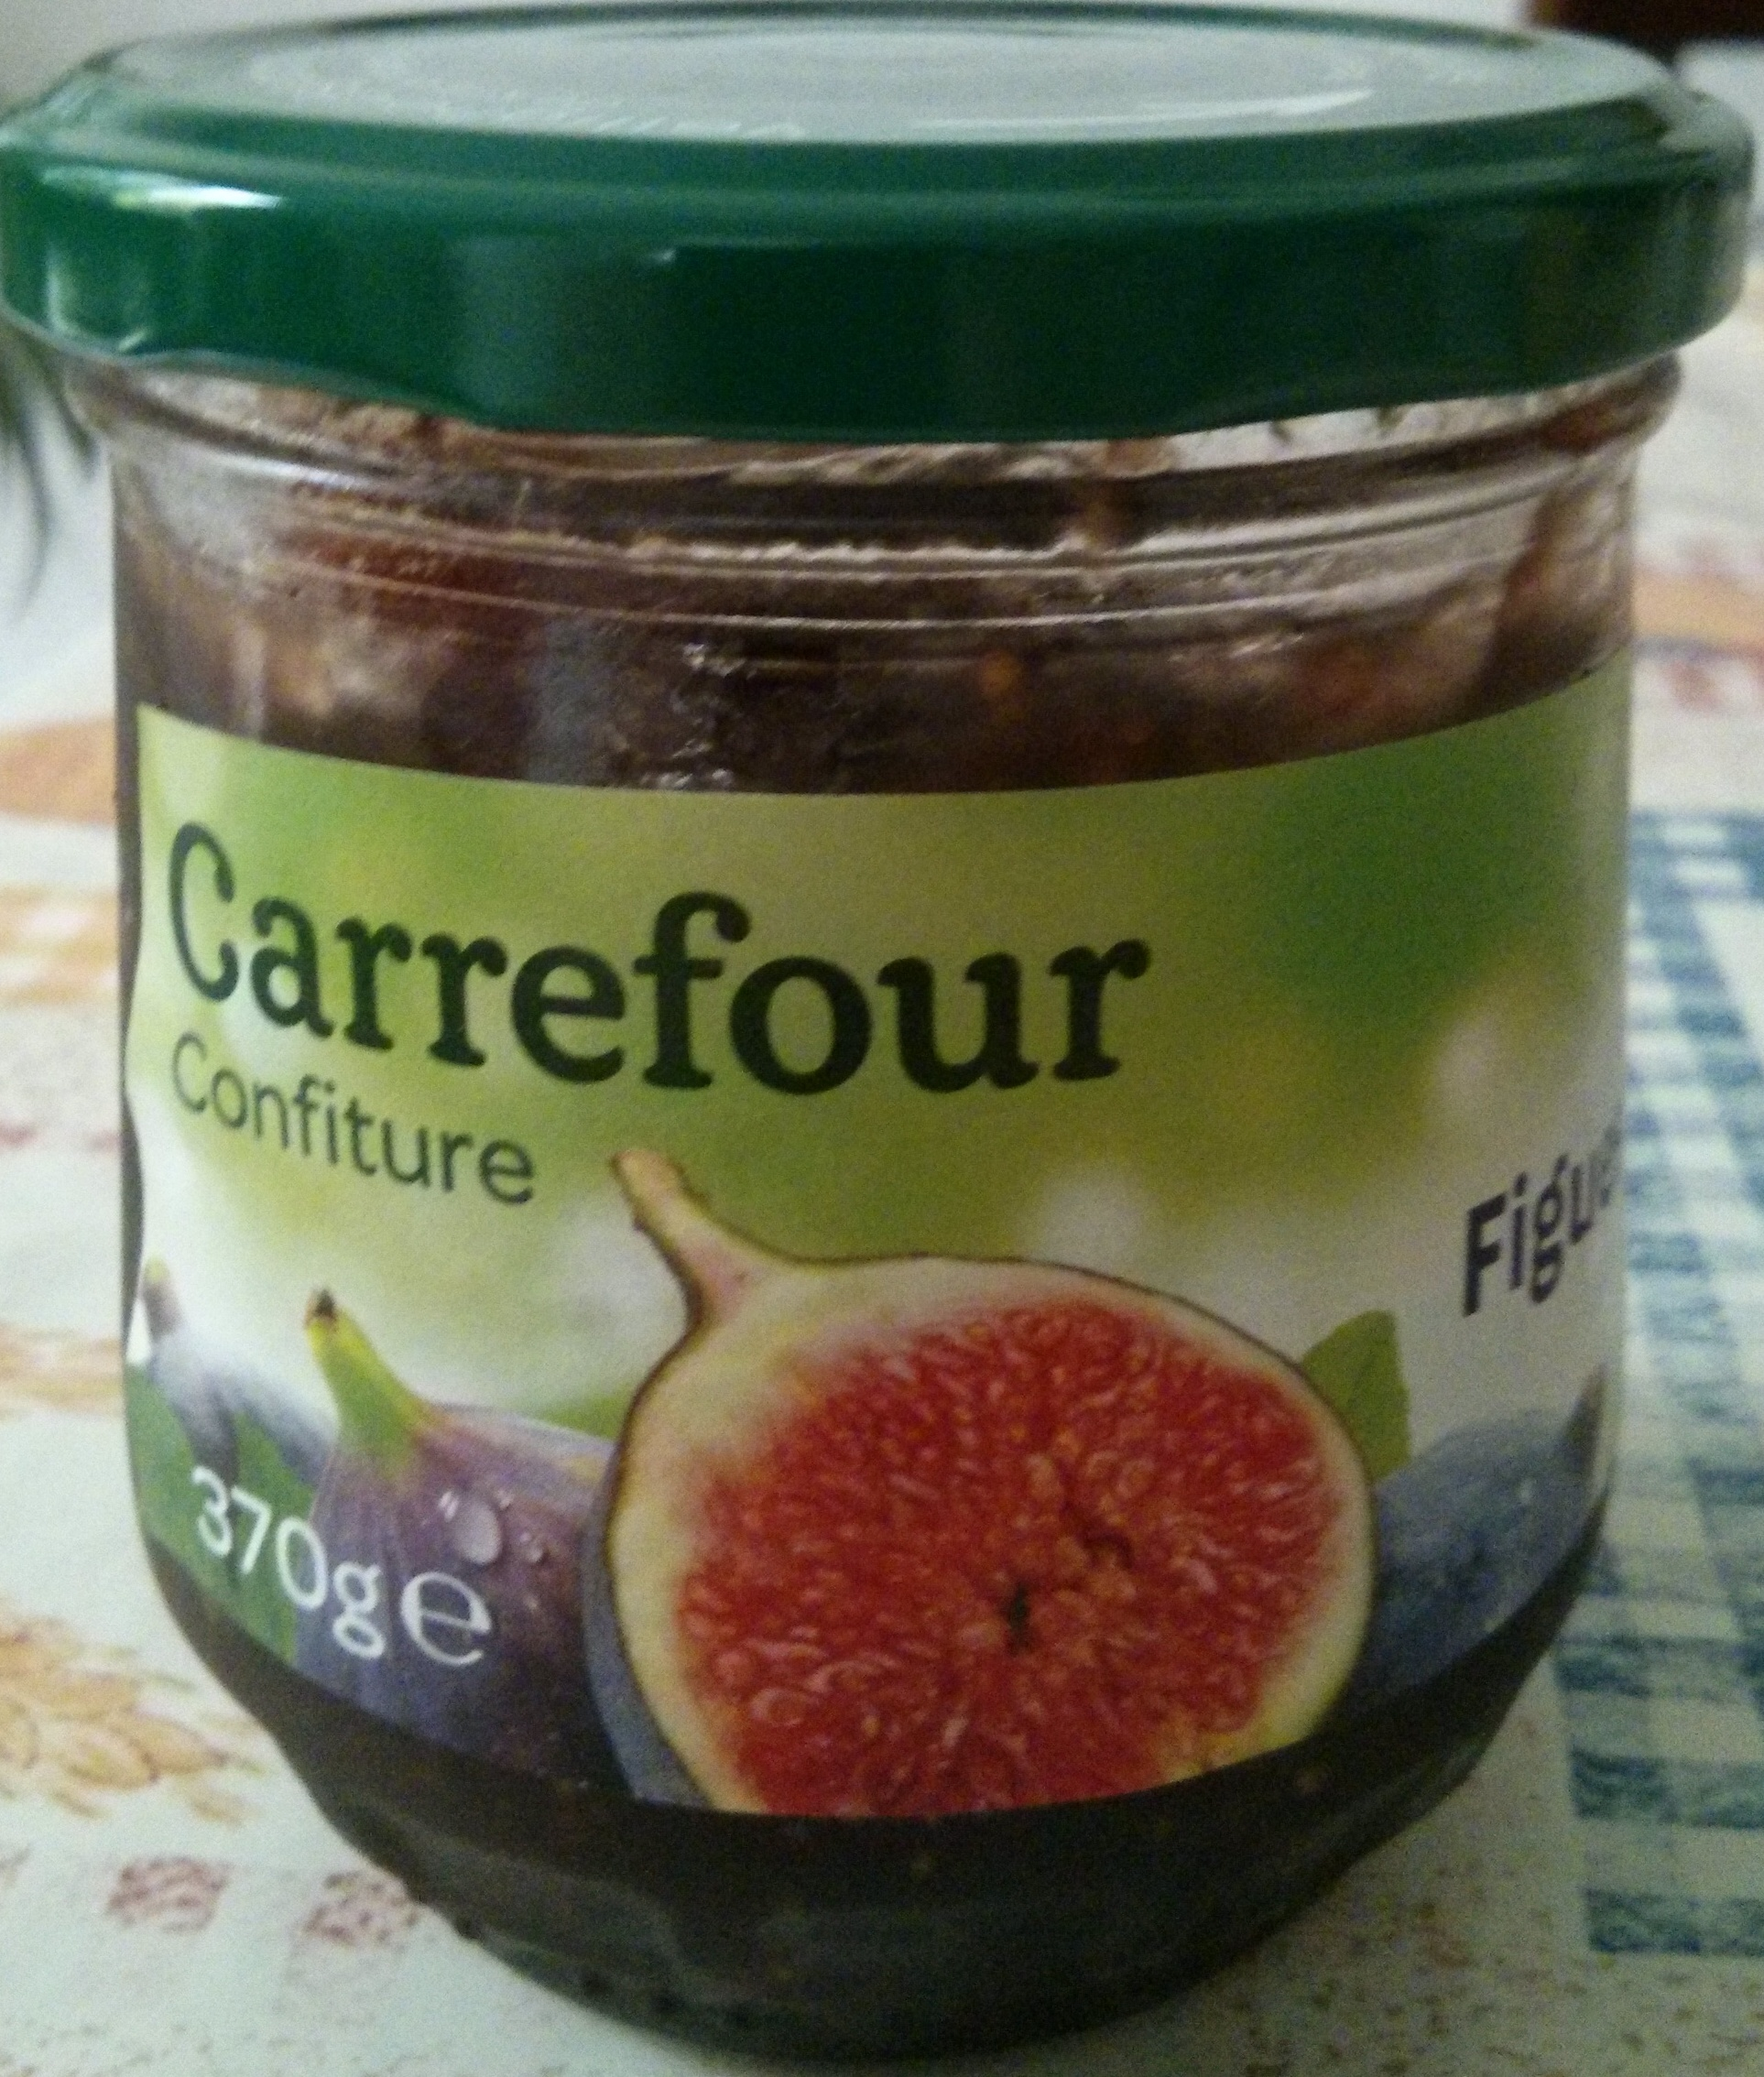 confiture de figues carrefour